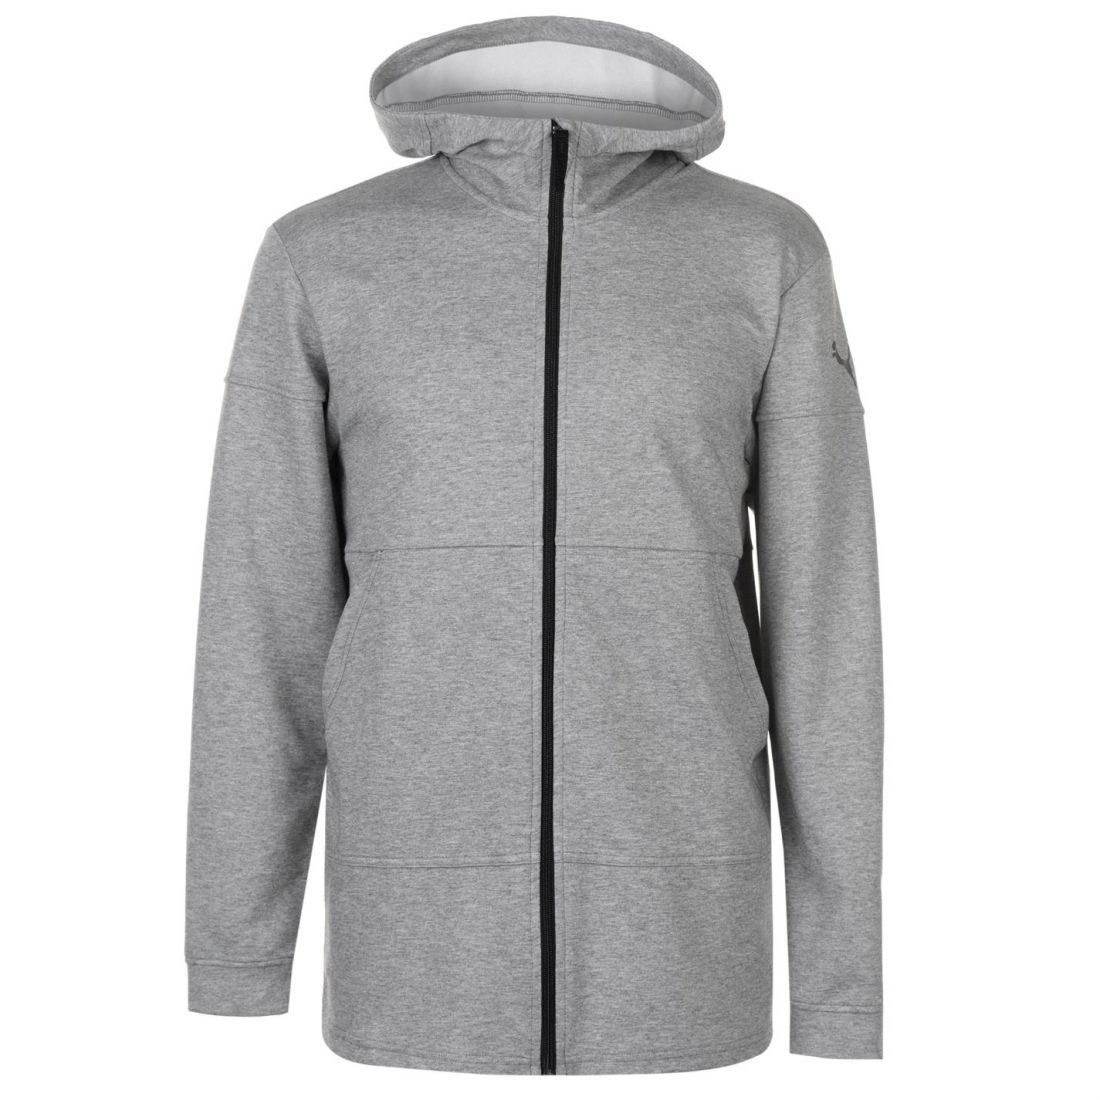 Puma Energy Zippedped Hoody Mens Gents Zip Hoodie Hooded Top Chin Guard Zipped Taille Und Sehnen StäRken